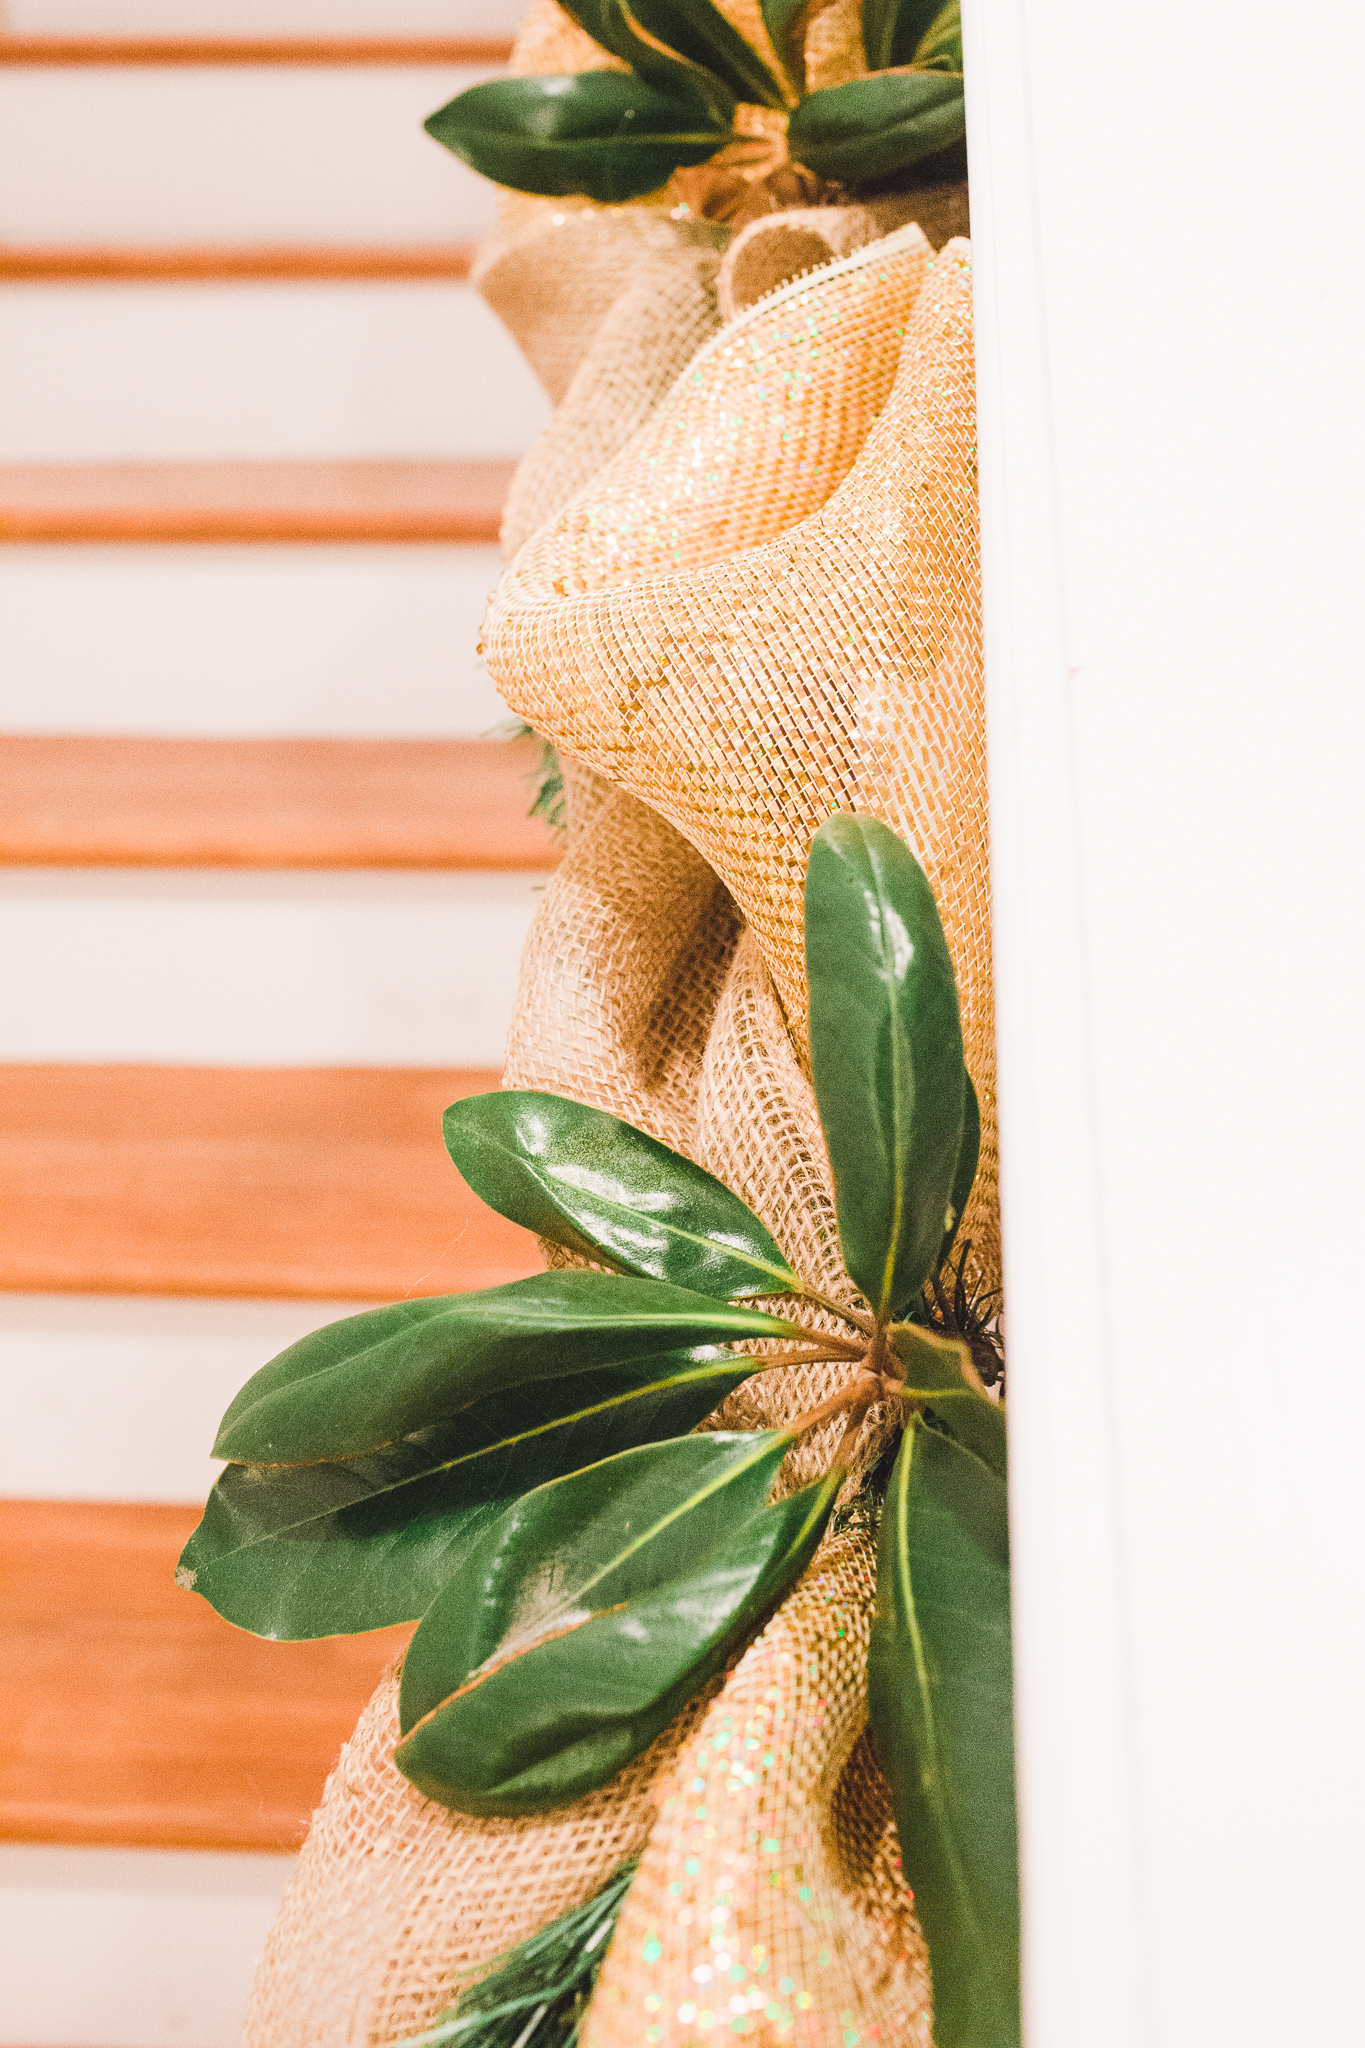 Burlap, ribbon, magnolia trimmings on the staircases; we have since added purple ornaments.